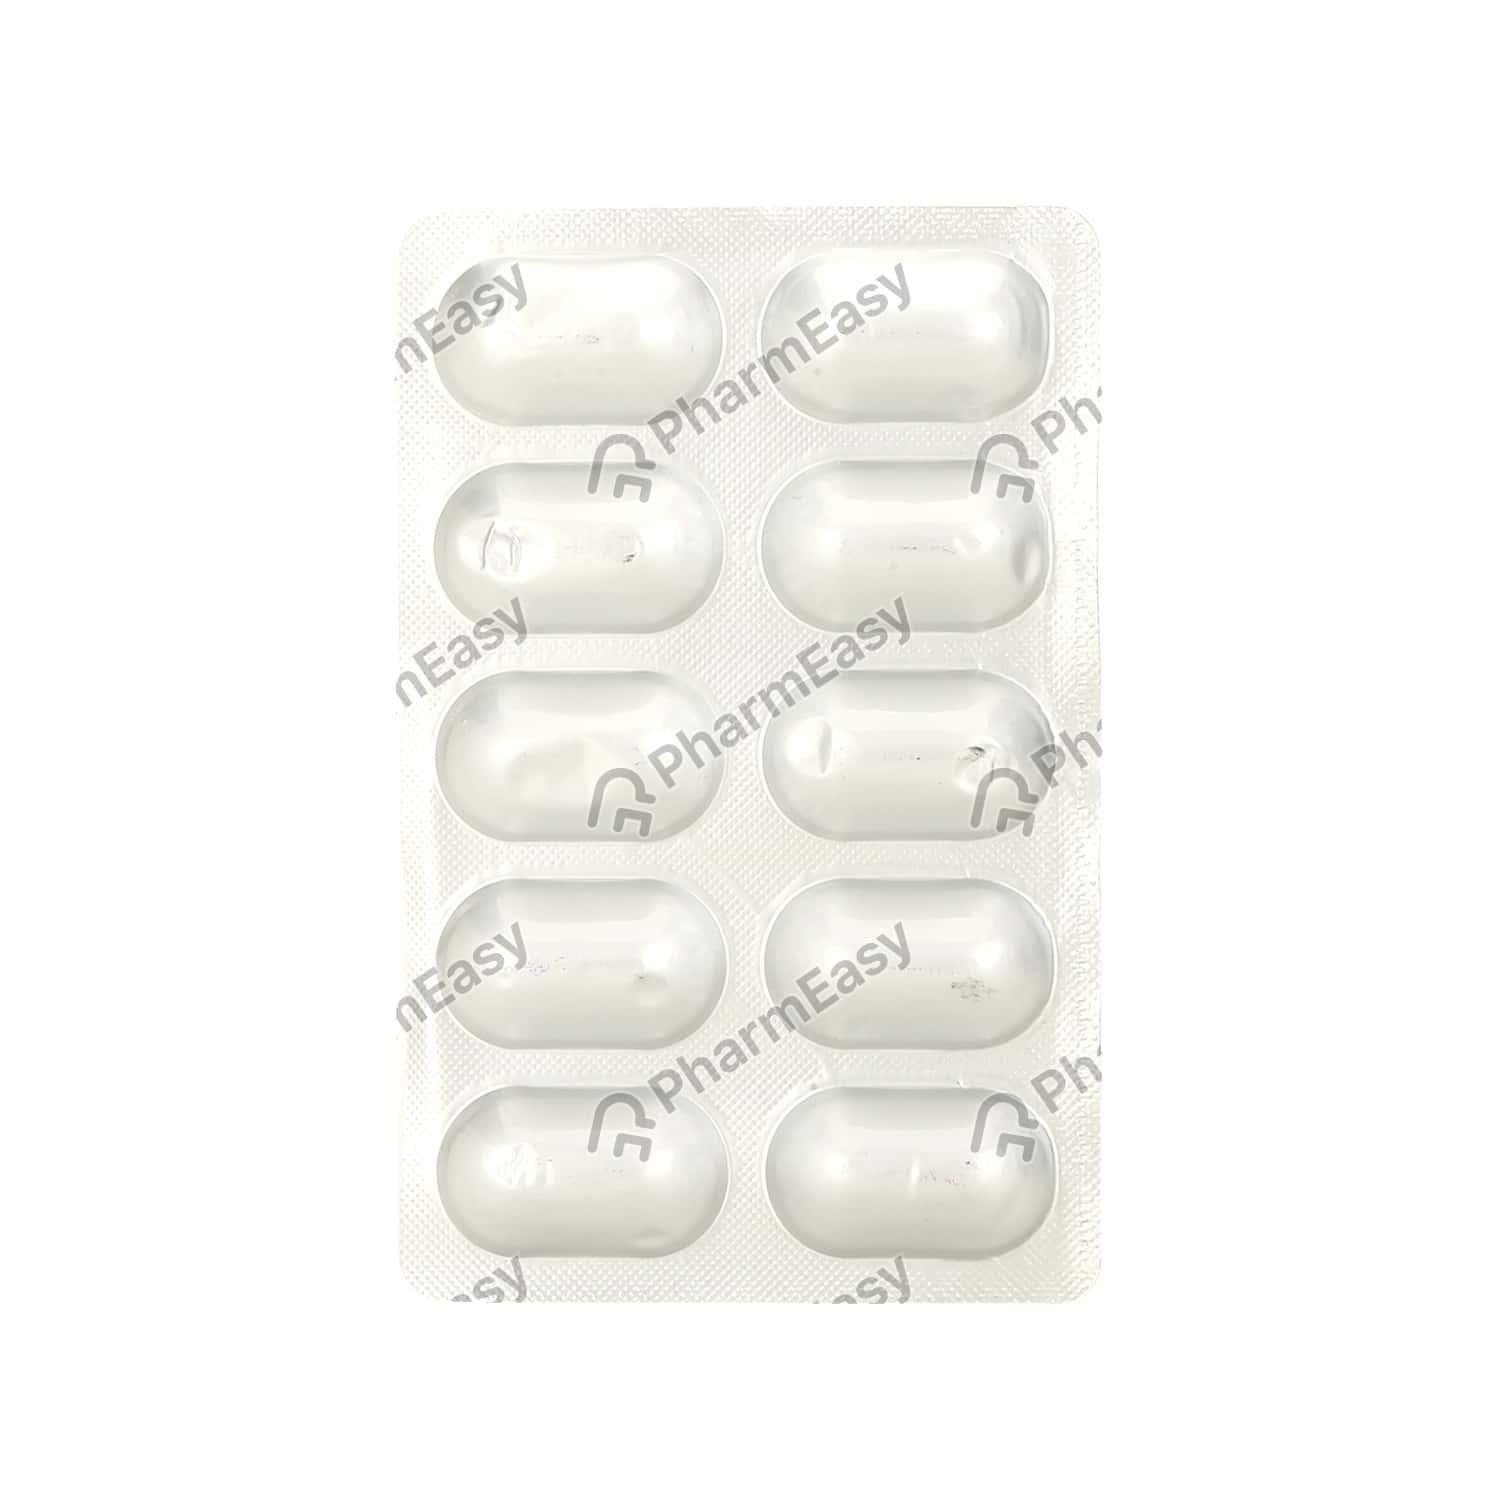 Renolife Strip Of 10 Tablets